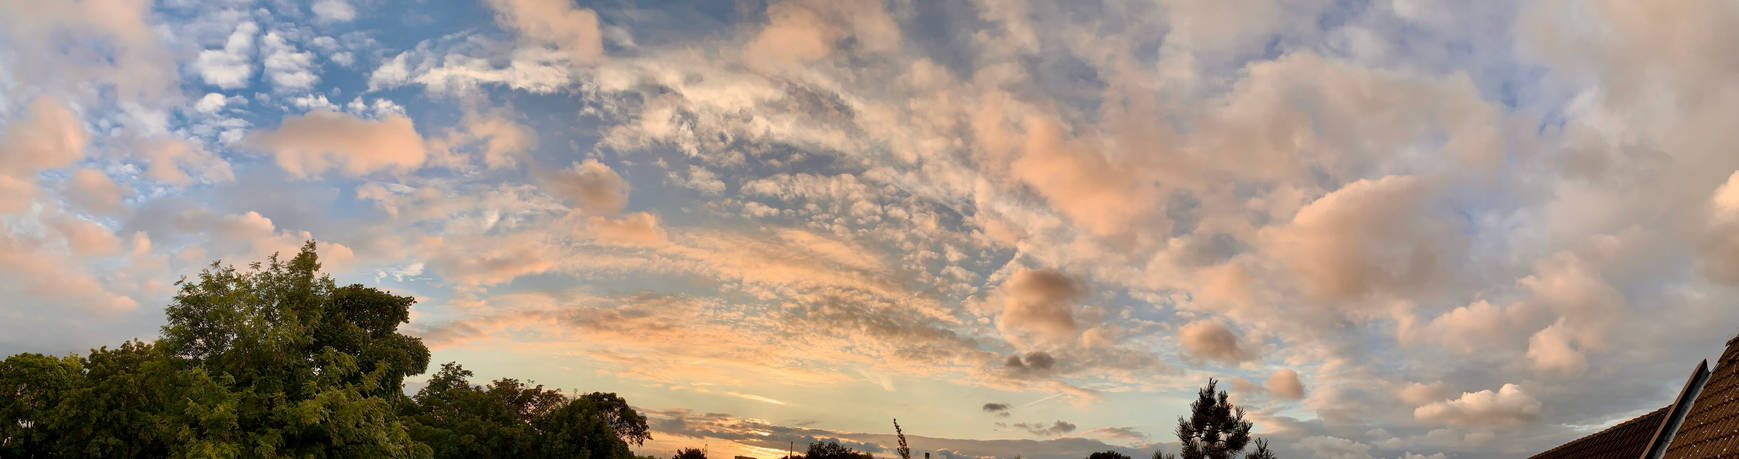 Panoramic Cloudscape, 2021 August 28th B